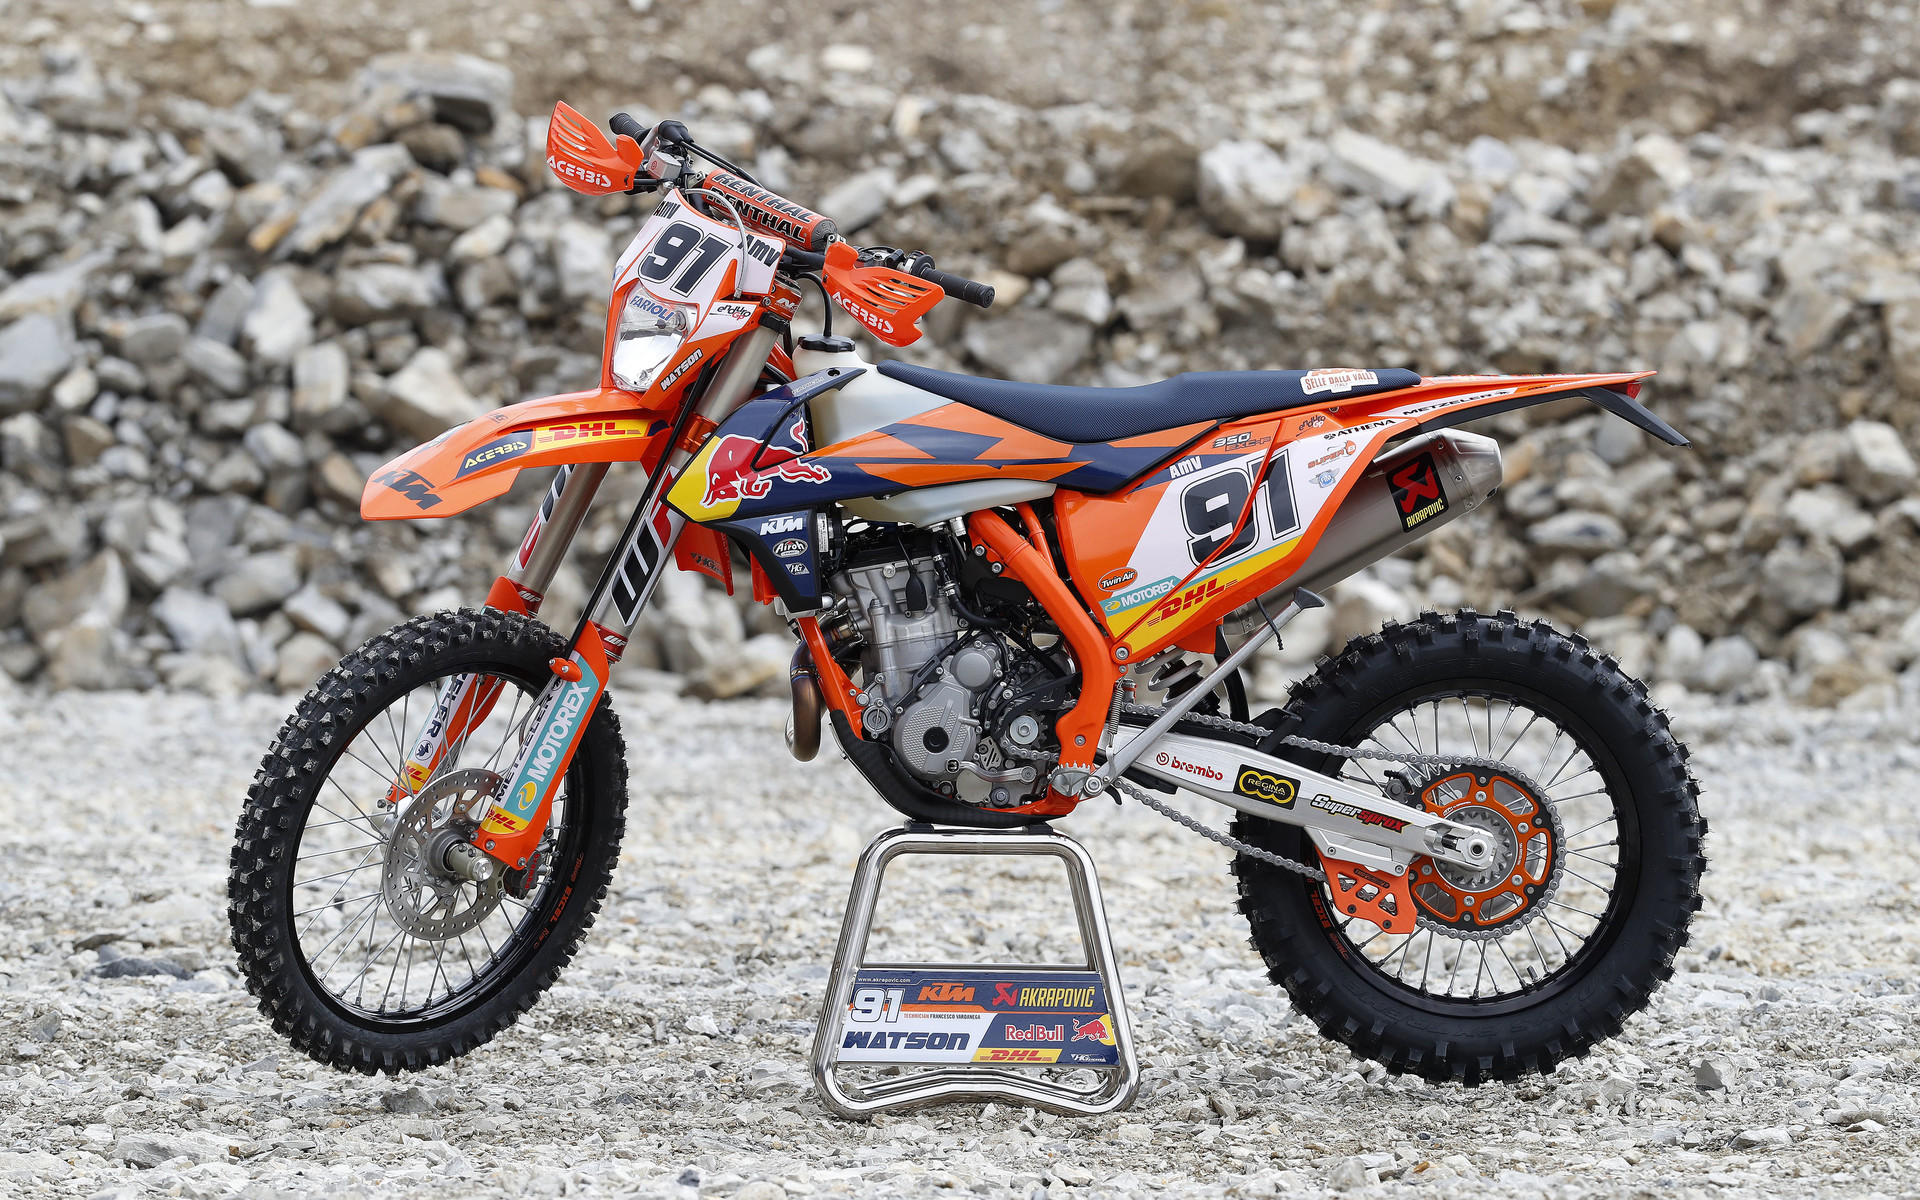 2018 ktm motorcycles. delighful ktm in any case we are sure more details will be revealed of the news bikes in  springtime so check out some nice photos for now ktm factory racing team  on 2018 ktm motorcycles